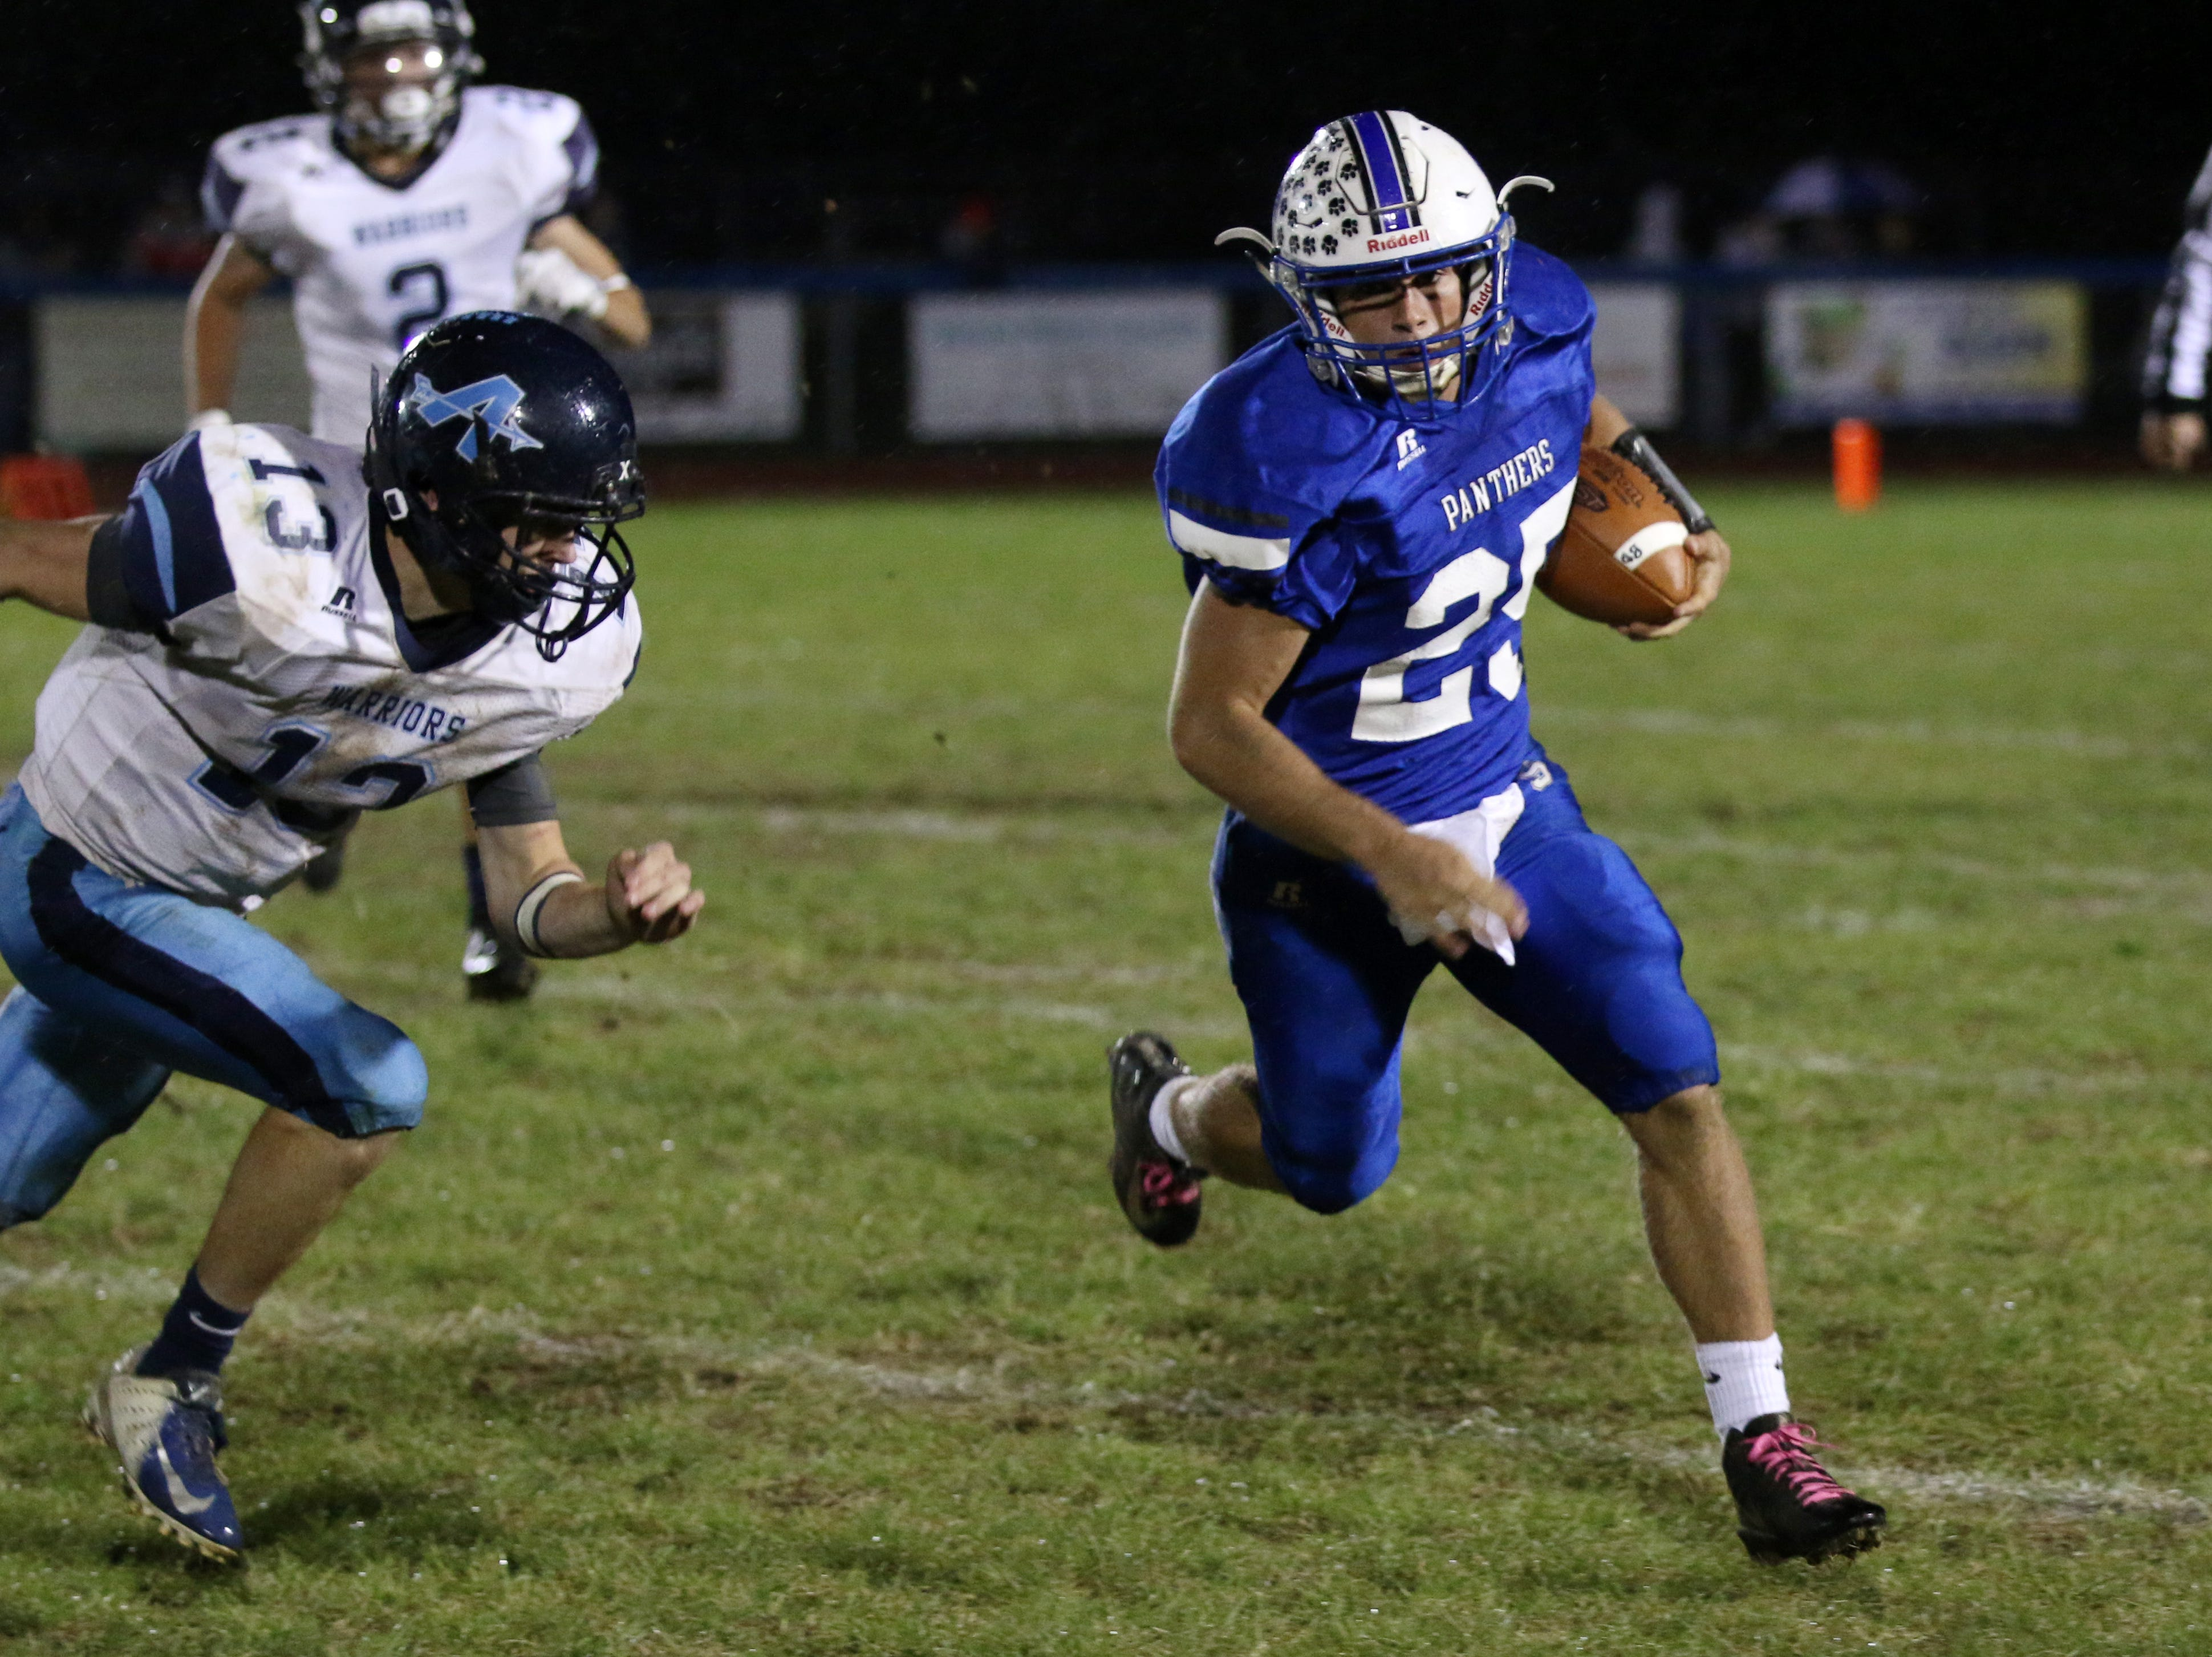 Adena defeated Southeastern at Southeastern High School Friday night 33-30.